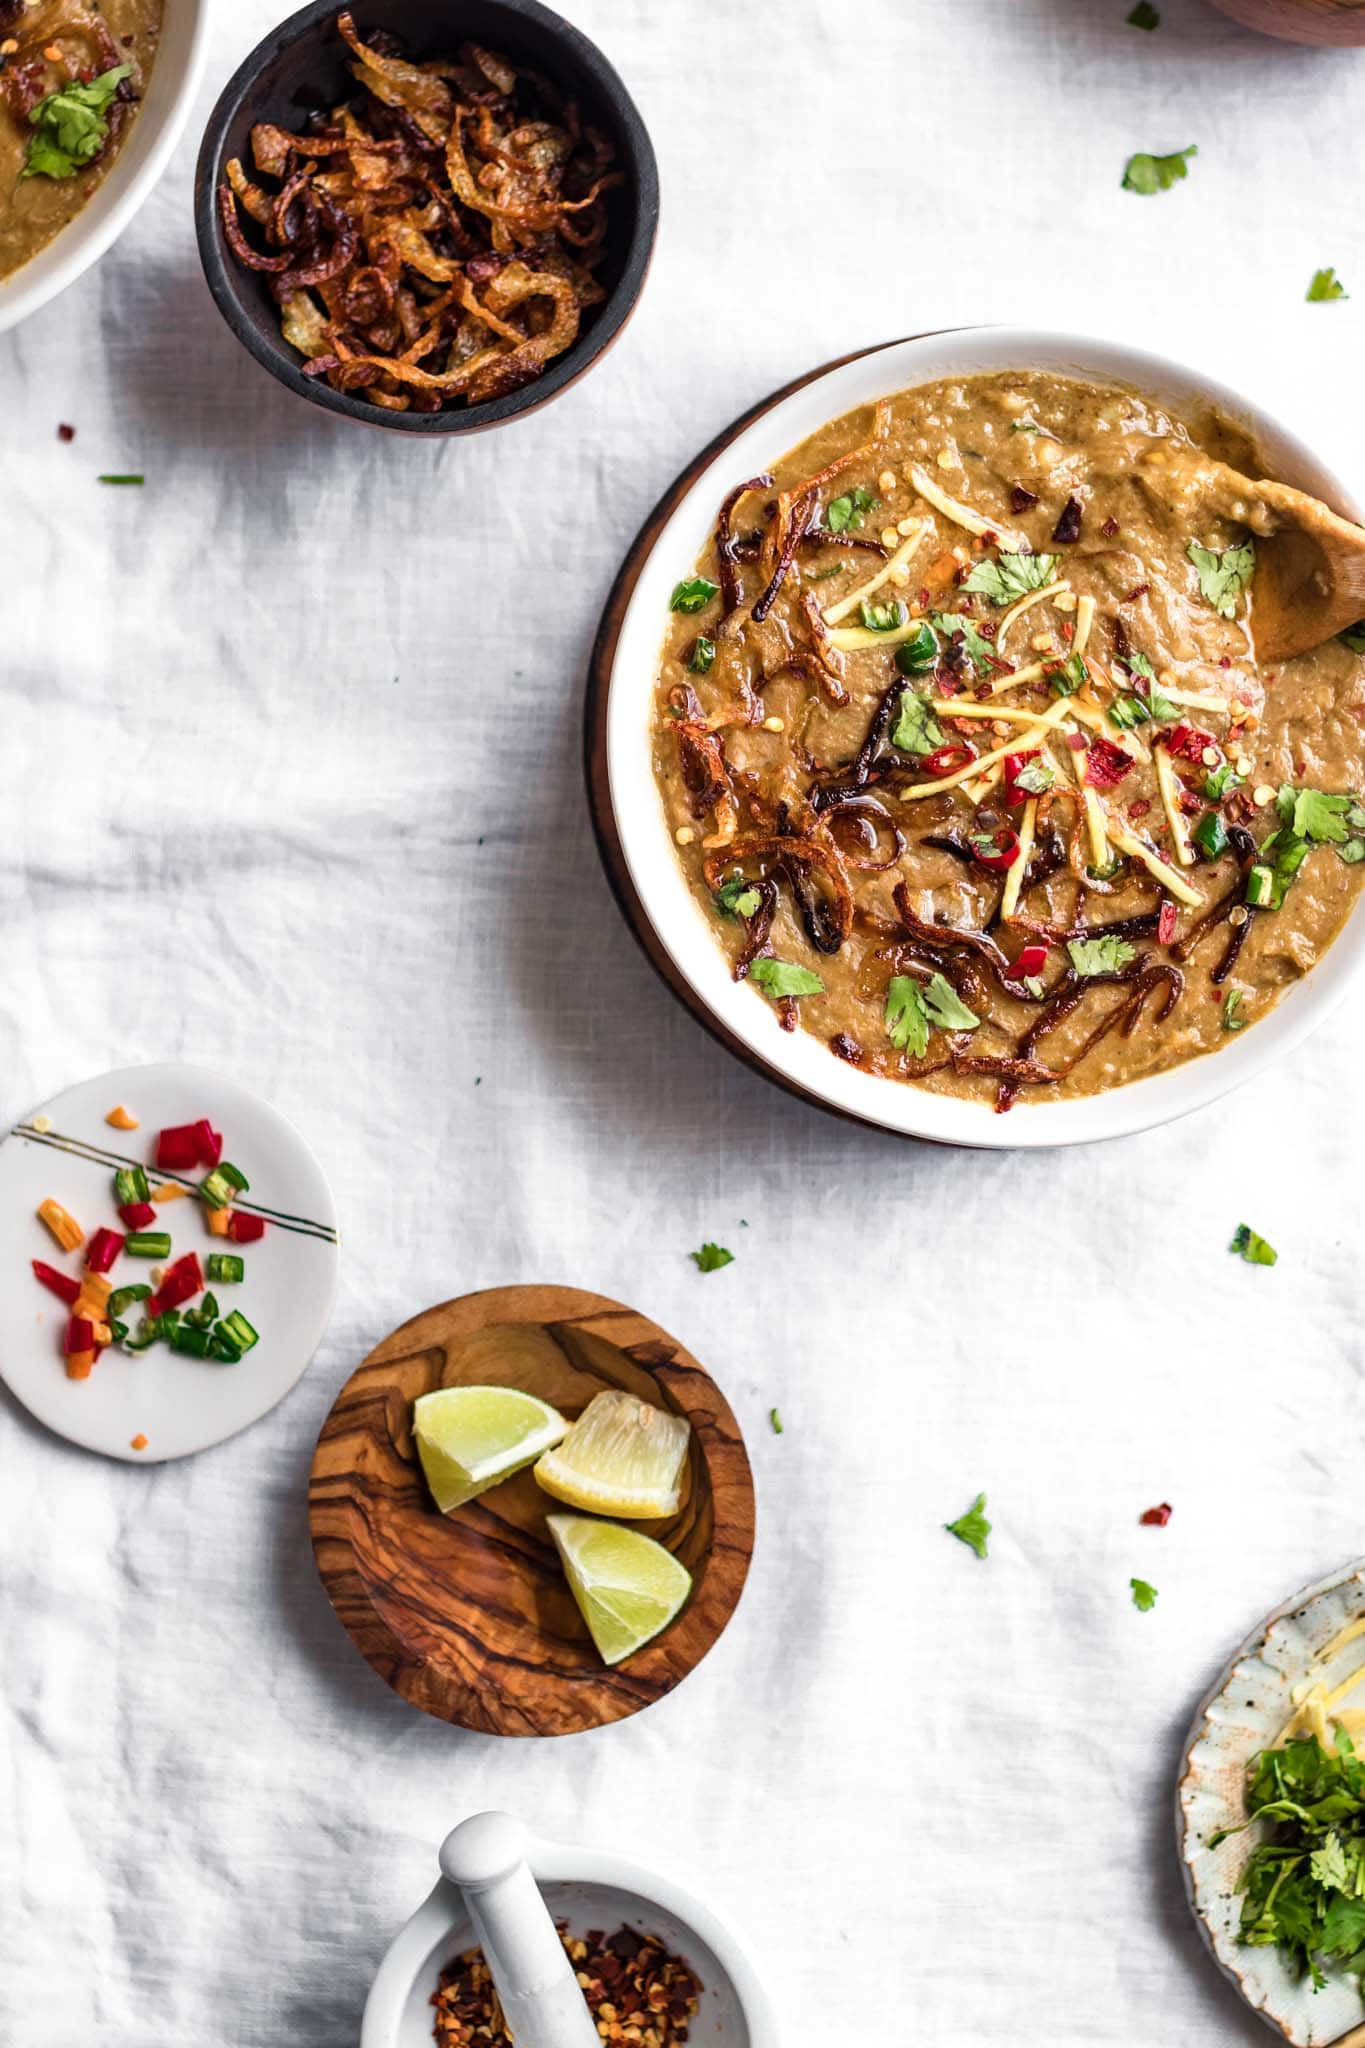 Pakistani Haleem recipe with fried onions, chili peppers, and lemon on the side